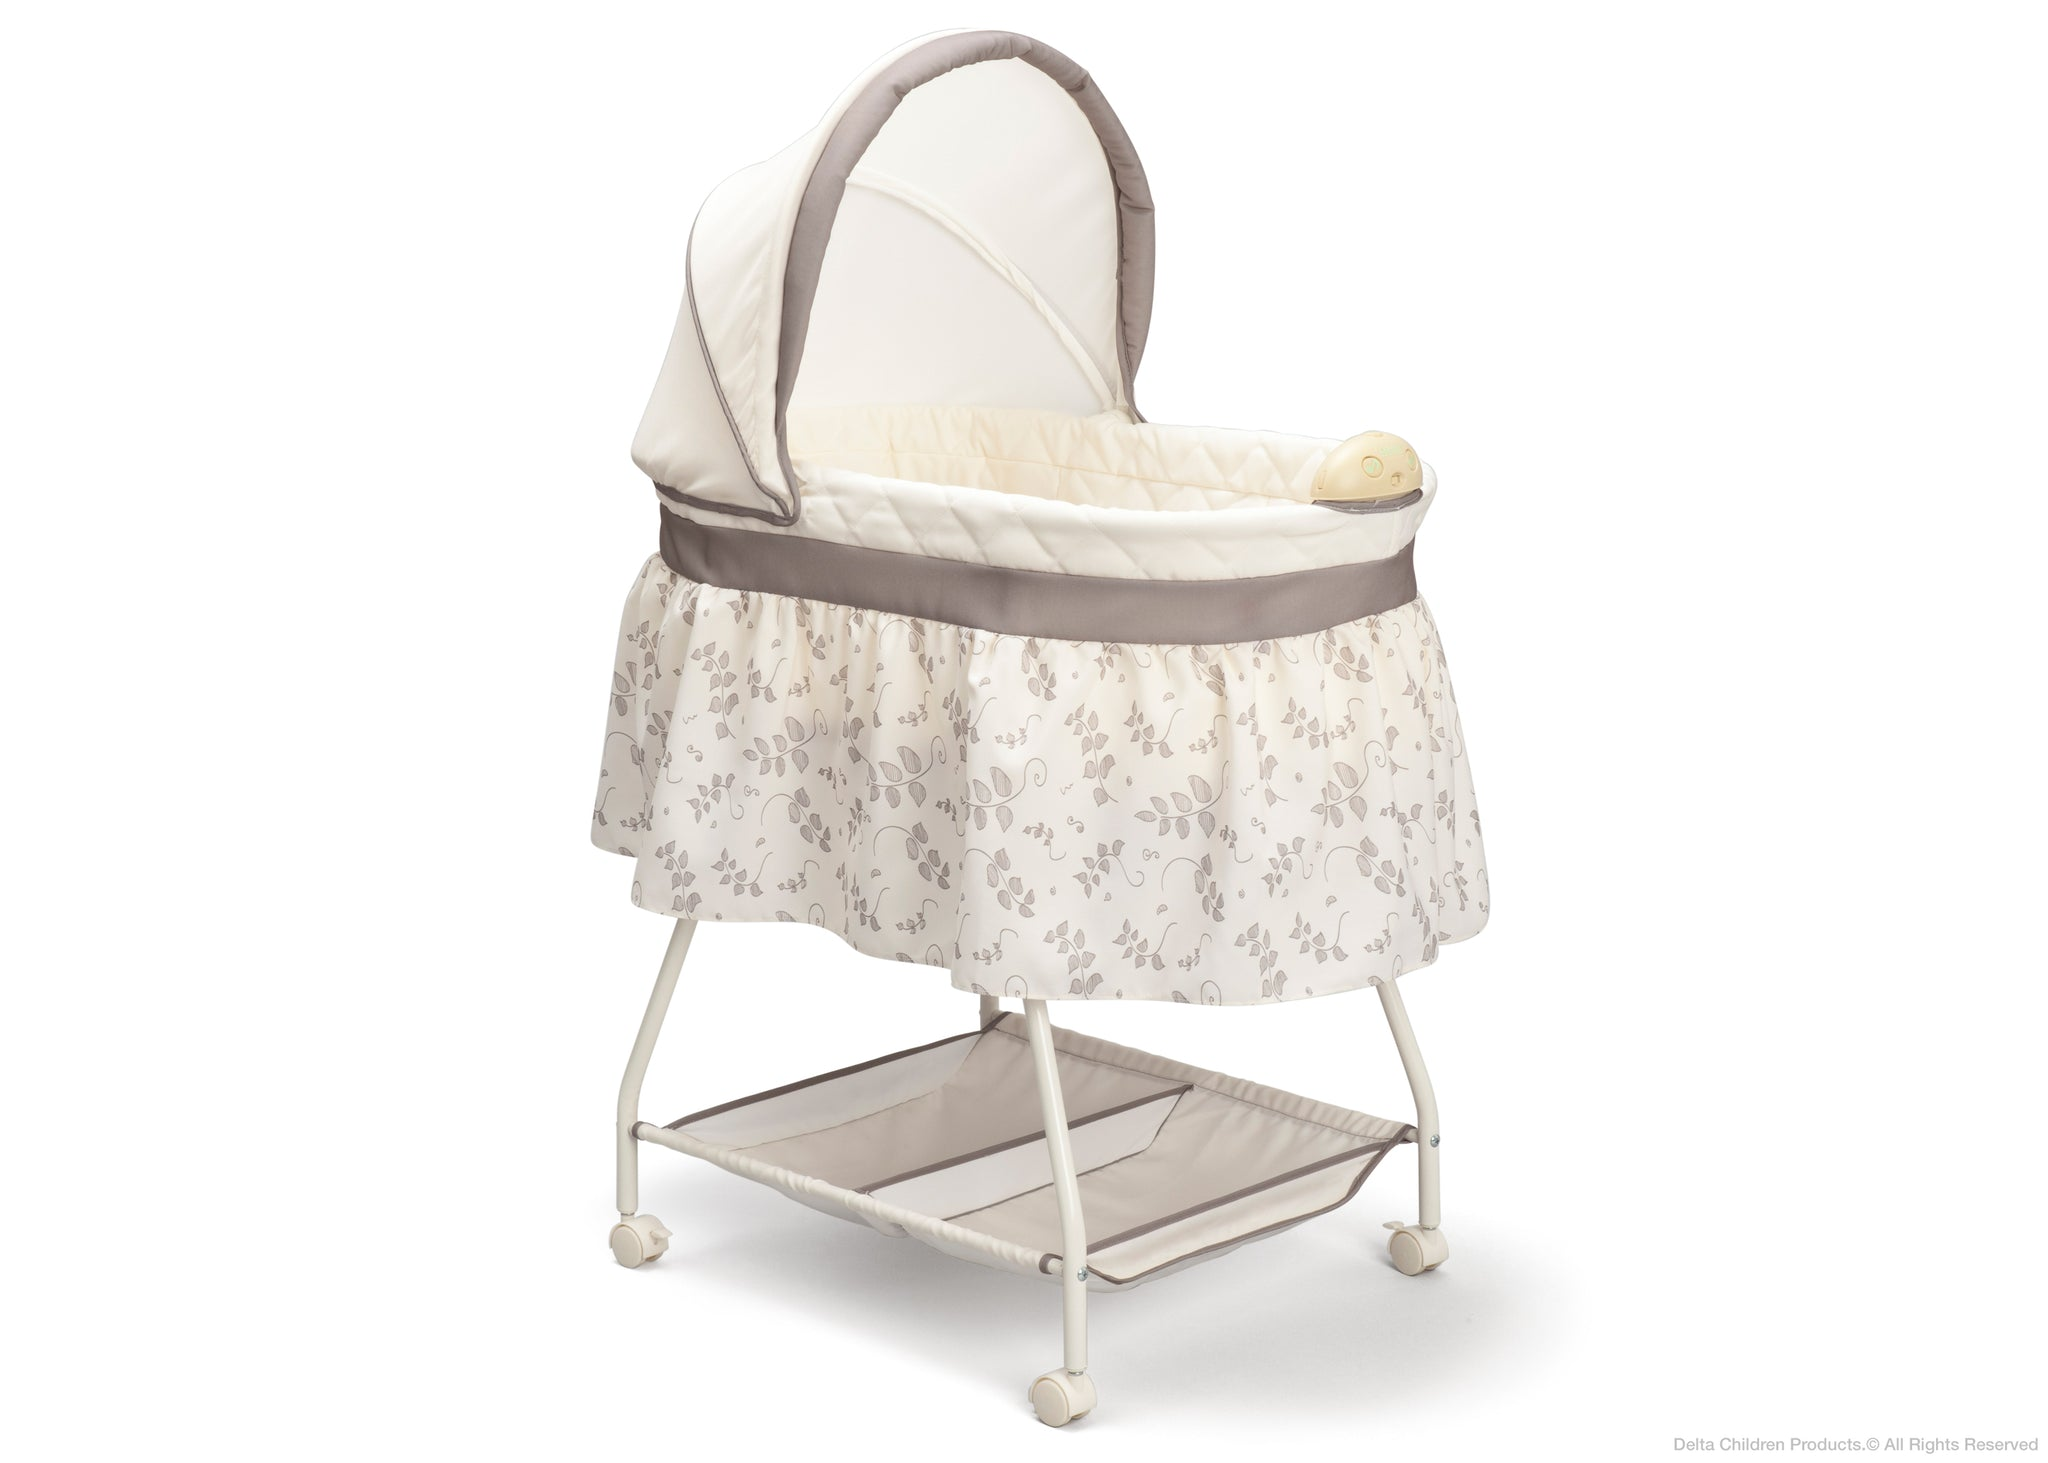 Delta Children Falling Leaves (138) Deluxe Sweet Beginnings Bassinet (25021) Badge Silo